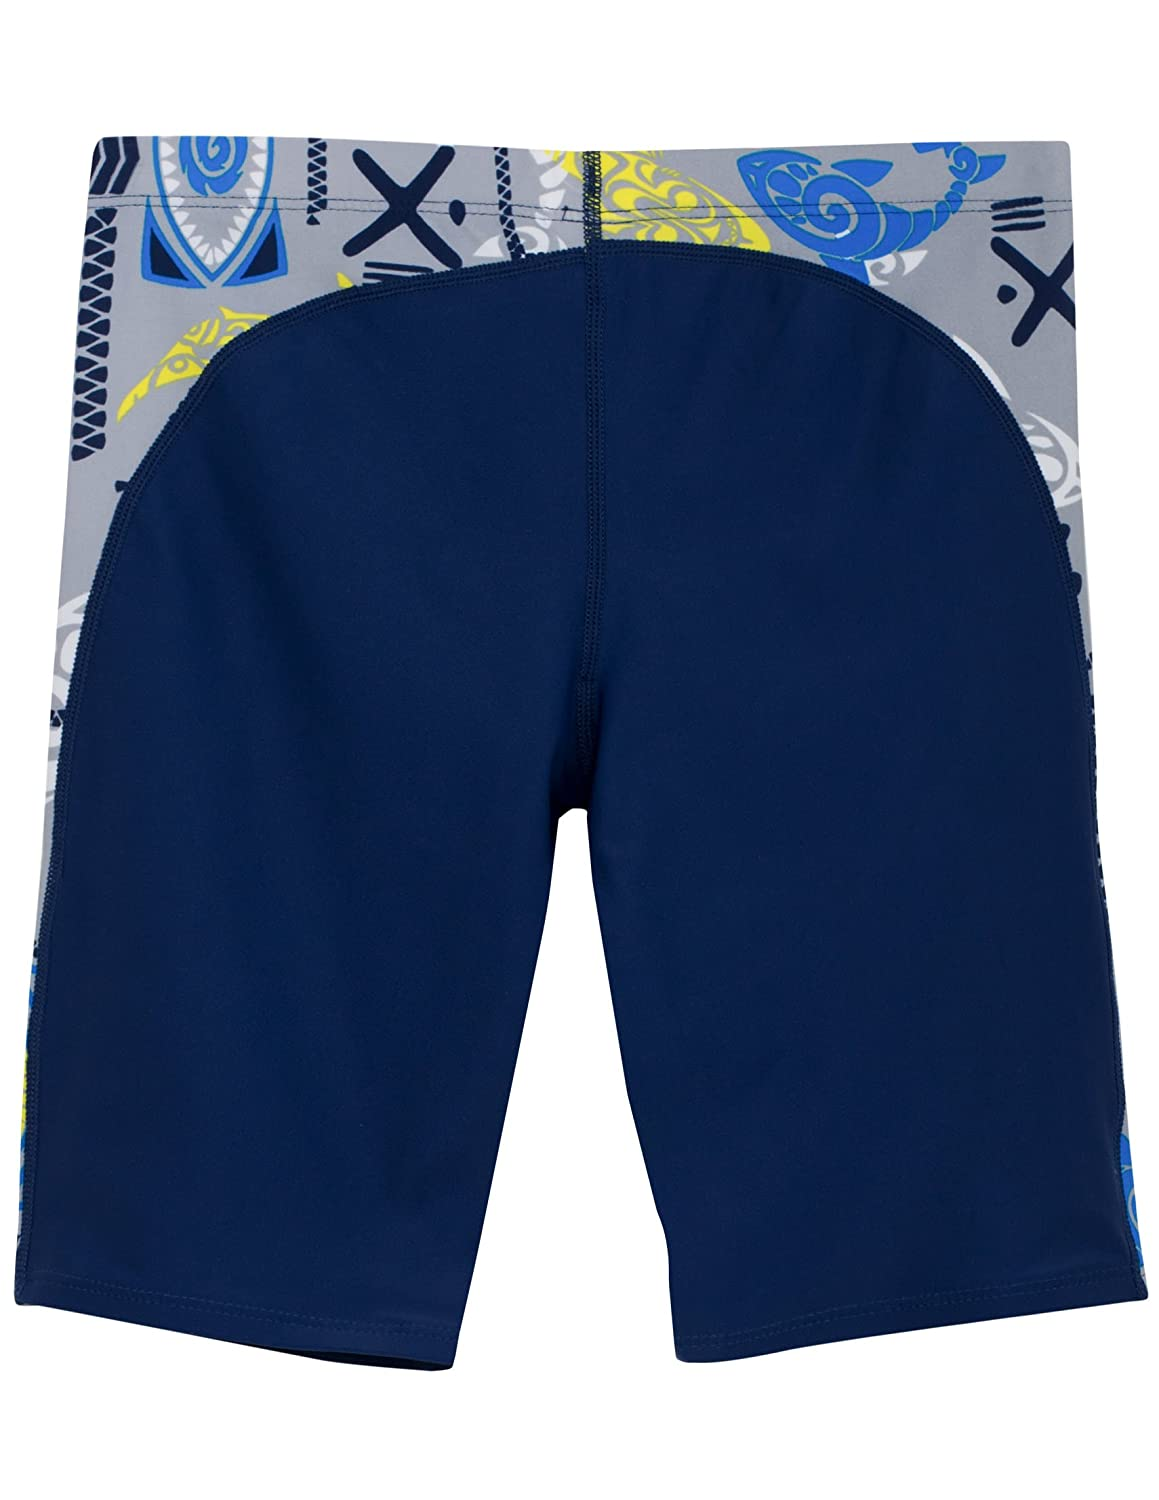 Tuga Boys Two-Piece Short Sleeve Swim Suit Set 2-14 Years Swimwear UPF 50